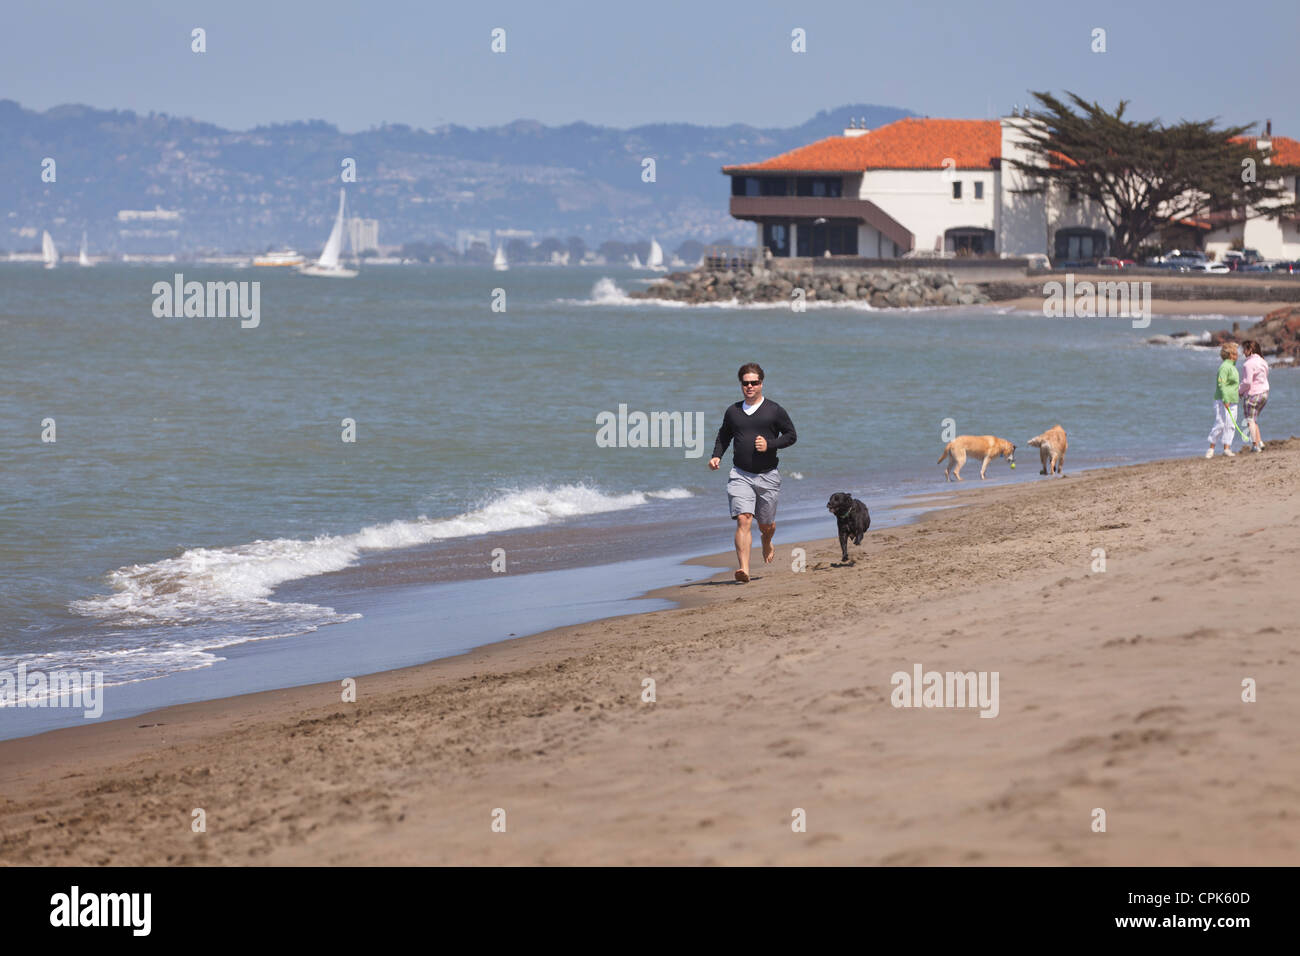 A man running on the beach with a dog Stock Photo